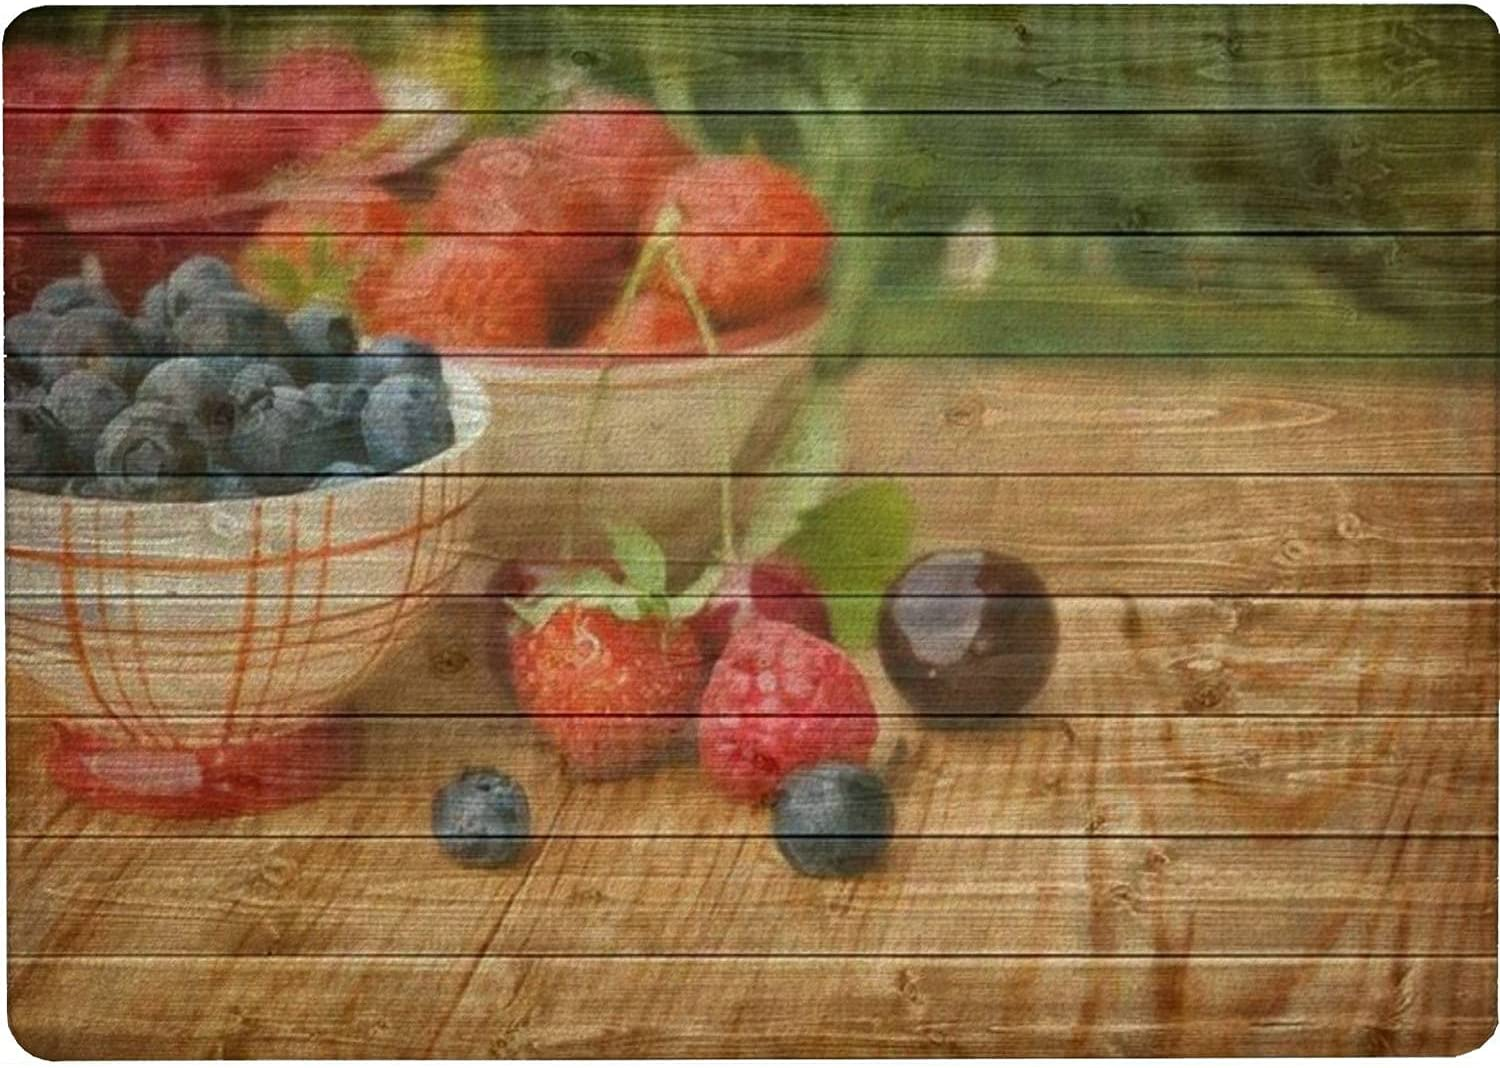 Tempered Glass Cutting Board 2021 autumn and winter new Berries in table bowls fr on Opening large release sale wooden